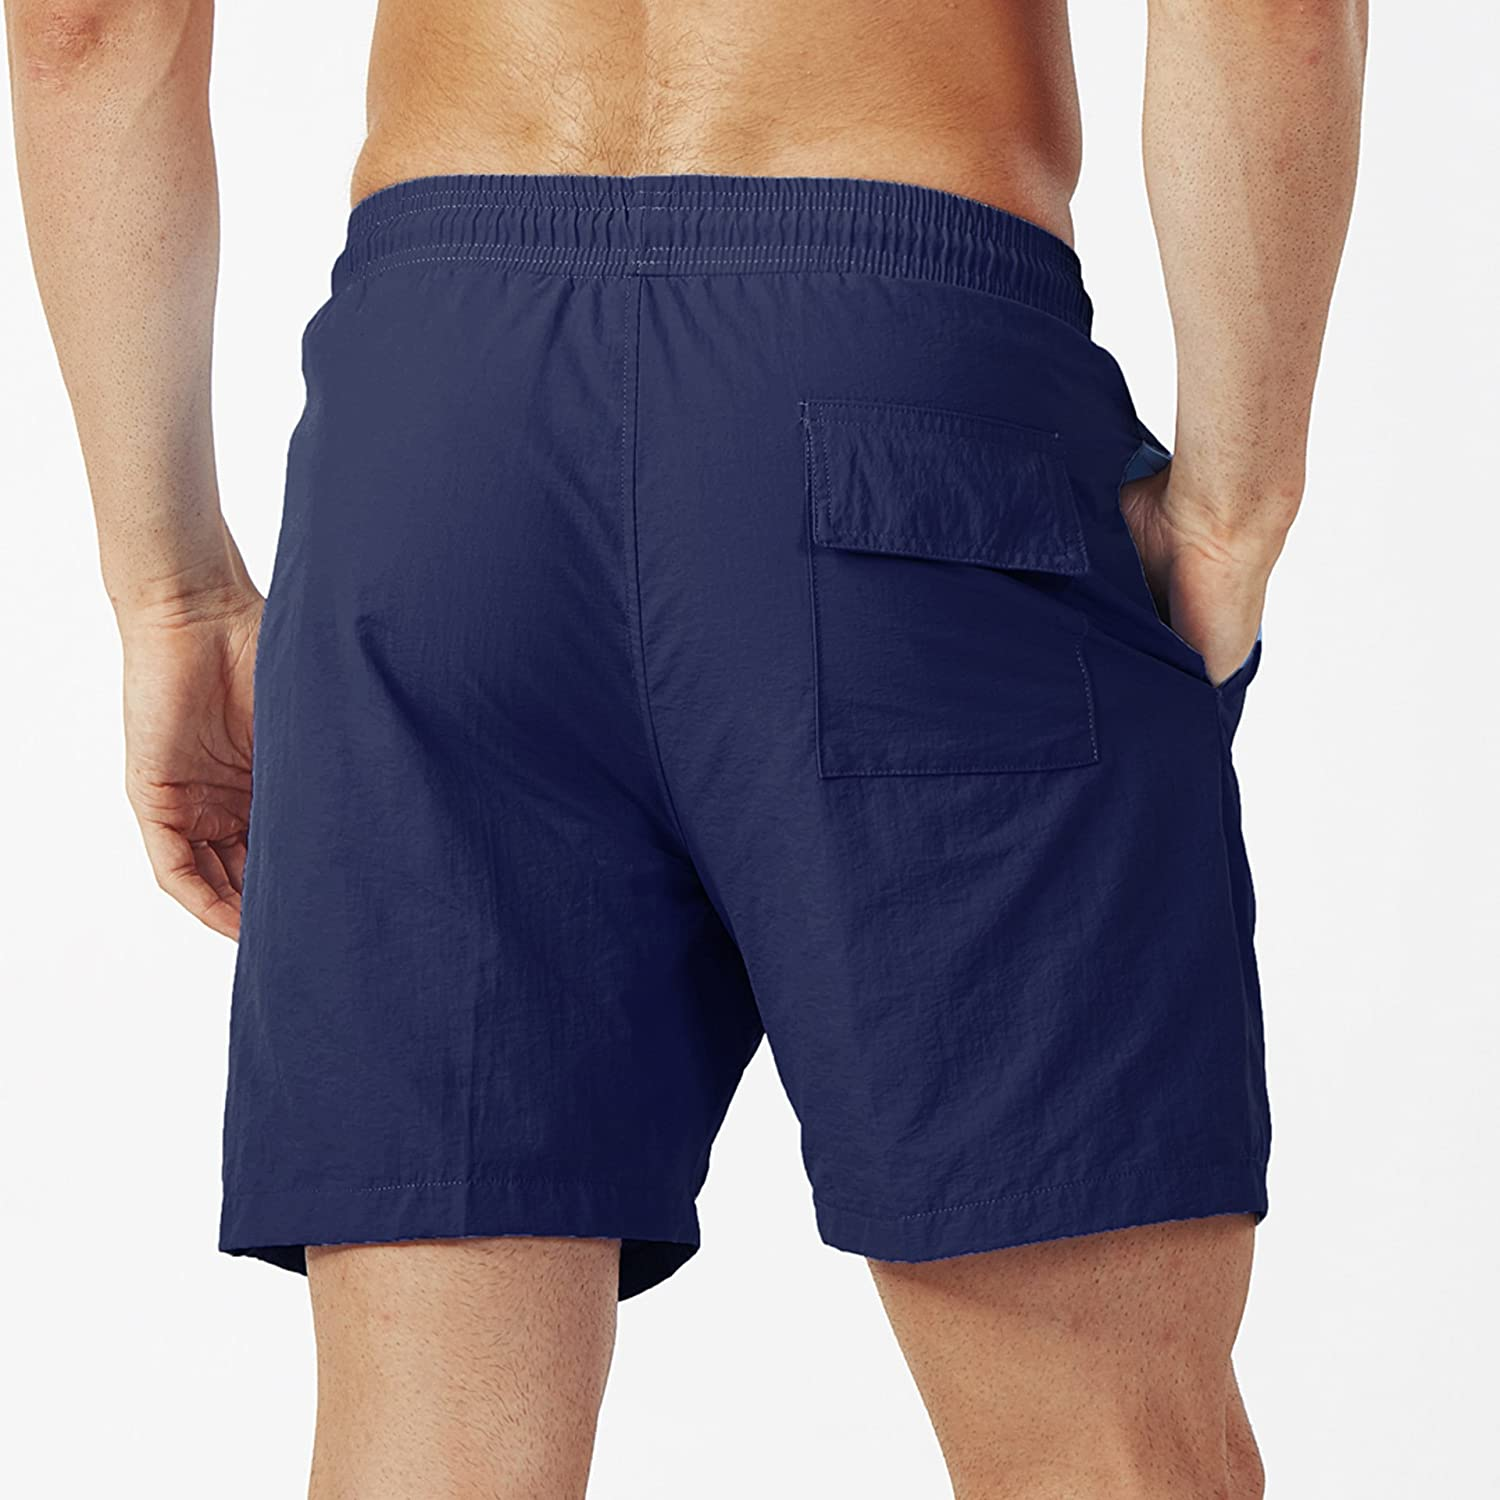 Lachi Mens Beach Shorts Quick Dry Swim Trunks with Mesh Lining Surfing Swimming Watershort Boardshorts